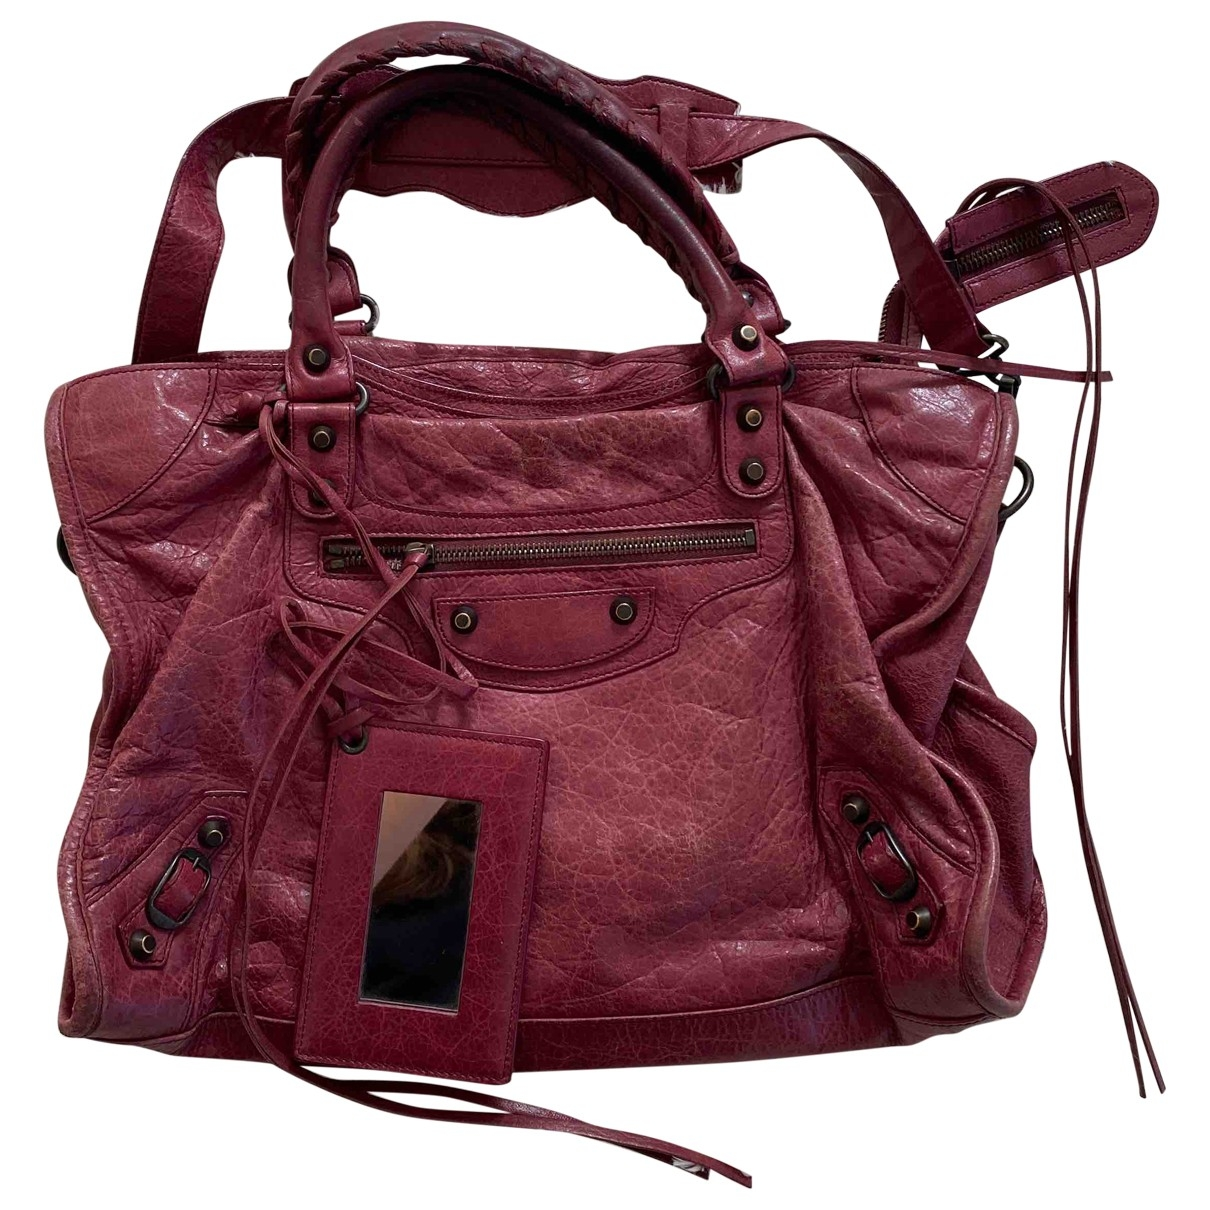 Balenciaga City Purple Leather handbag for Women \N